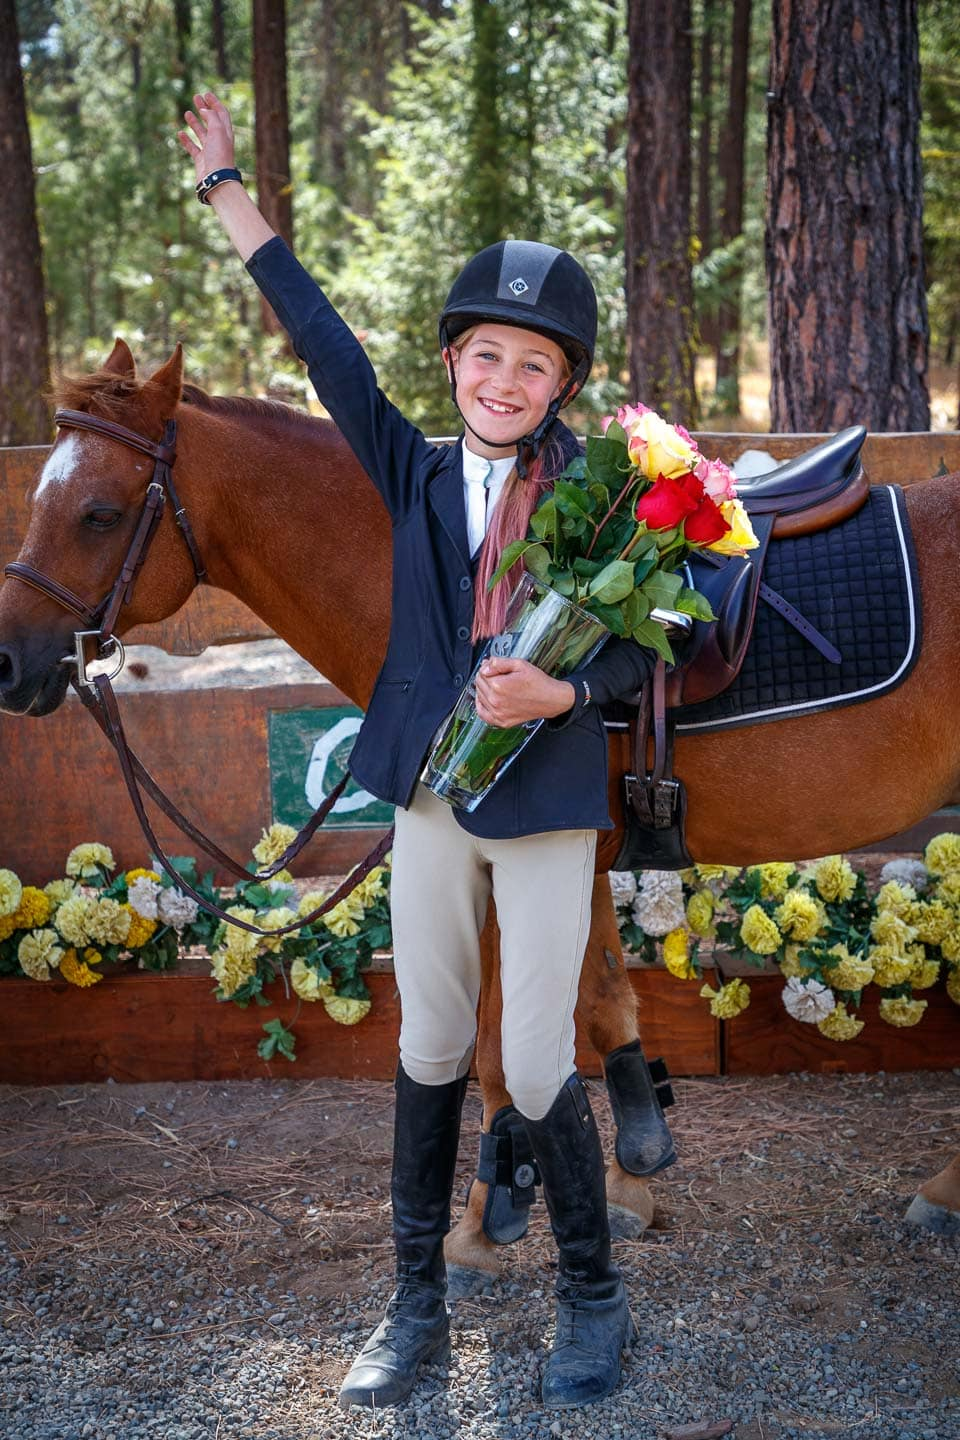 Sahalee Fox receiving the 2018 Cascade Circuit Cup award for her pony Morton's The Celebrity in the Jumper to 1.05m category.